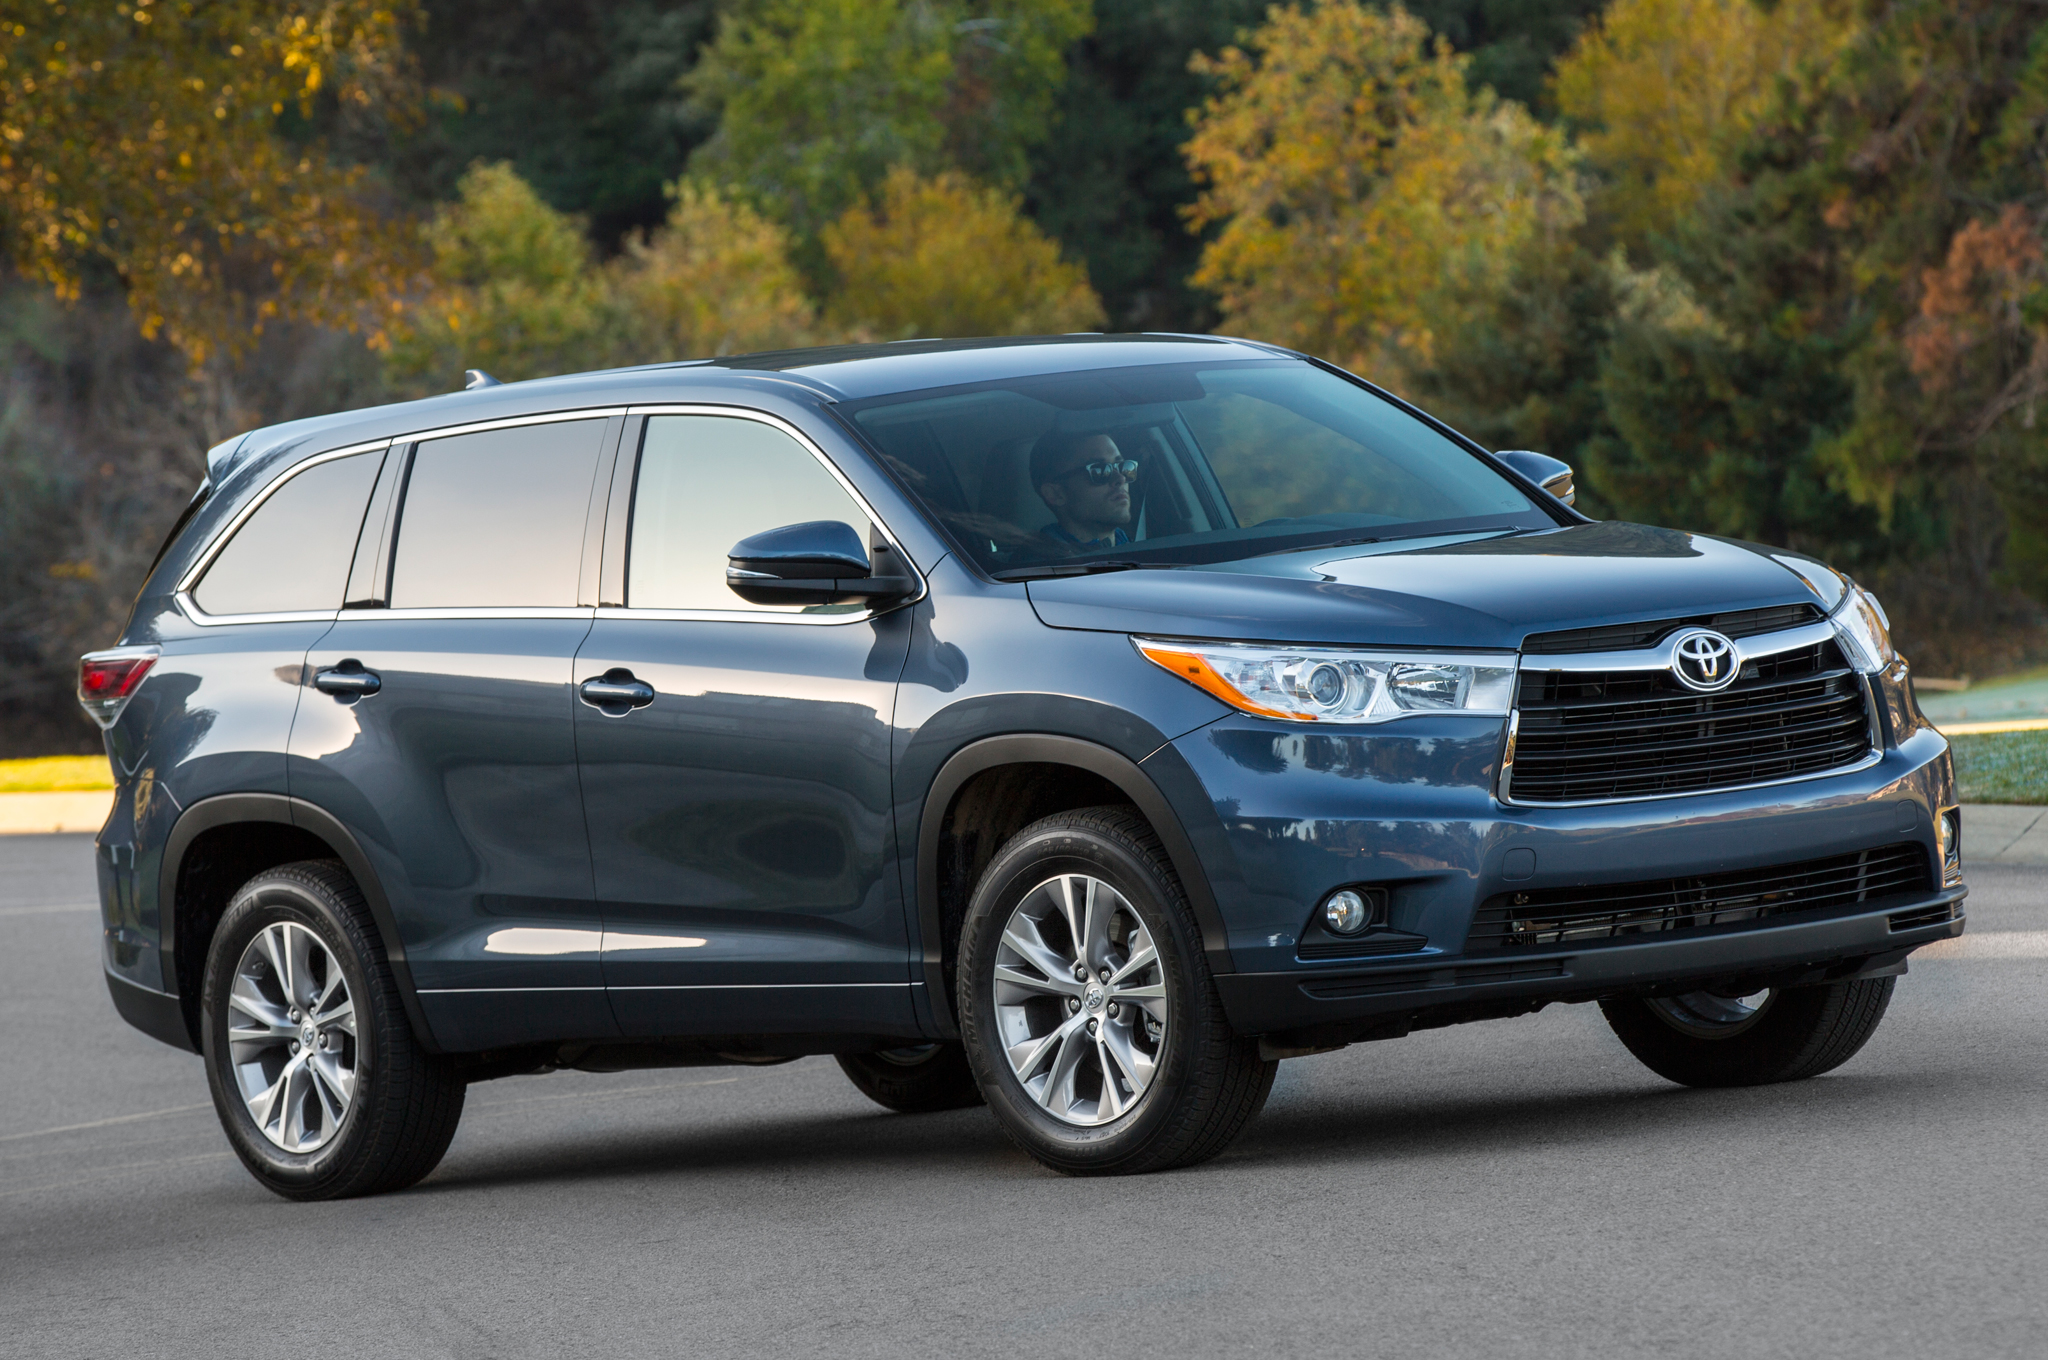 hight resolution of 2014 toyota highlander recalled for problem with seat belt motor trend rh motortrend com 2014 toyota